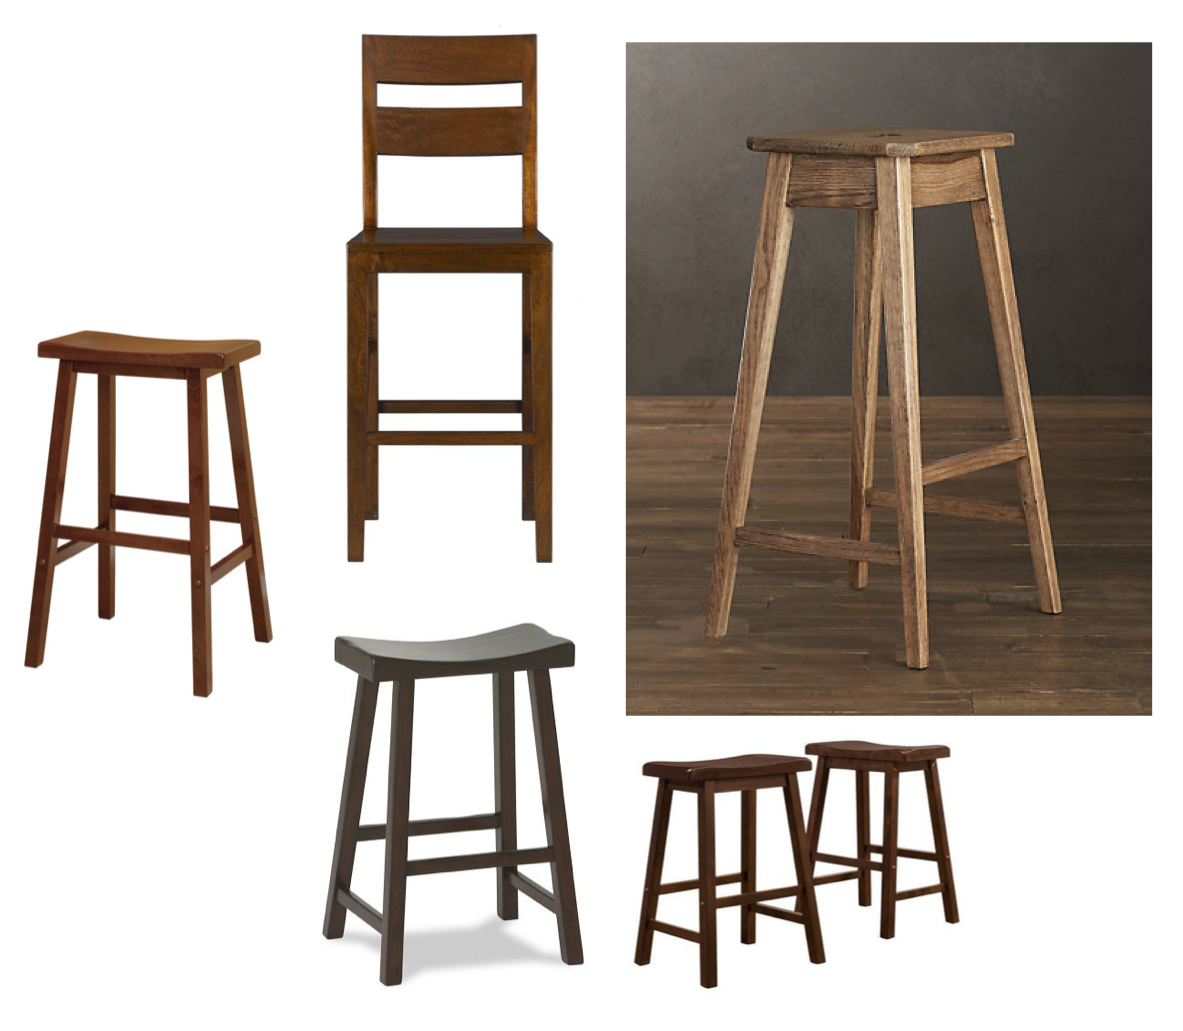 Build Your Own Bar Stool Kit